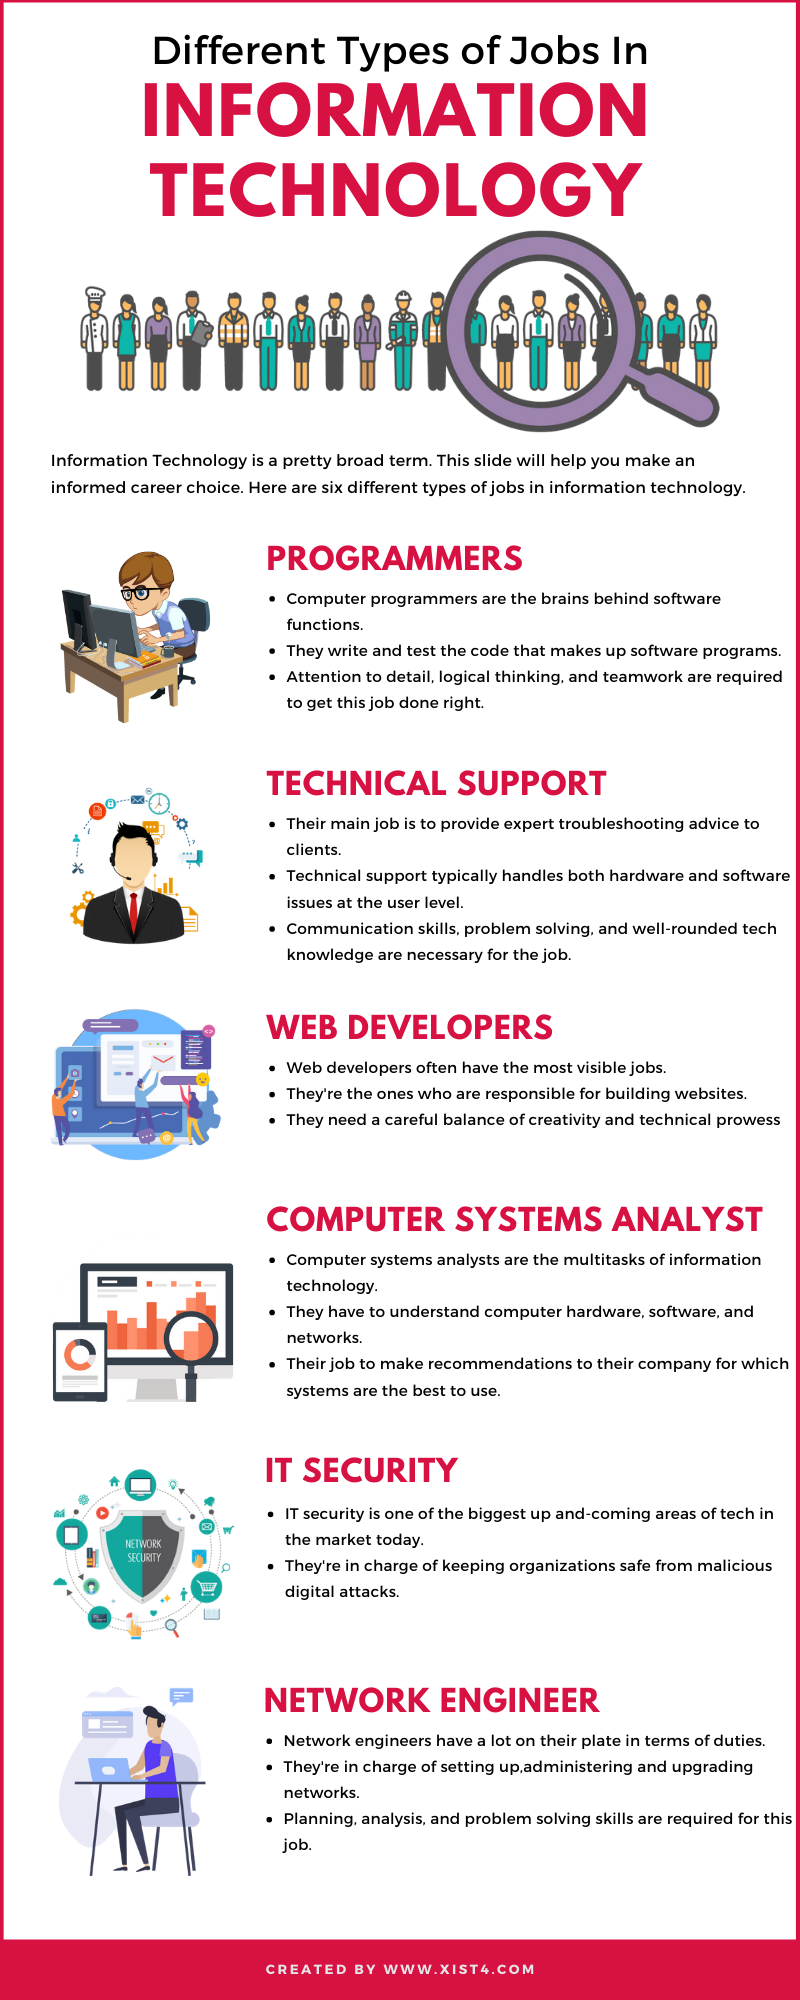 Different Types Of Jobs In Information Technology Job Information Information Technology Logical Thinking